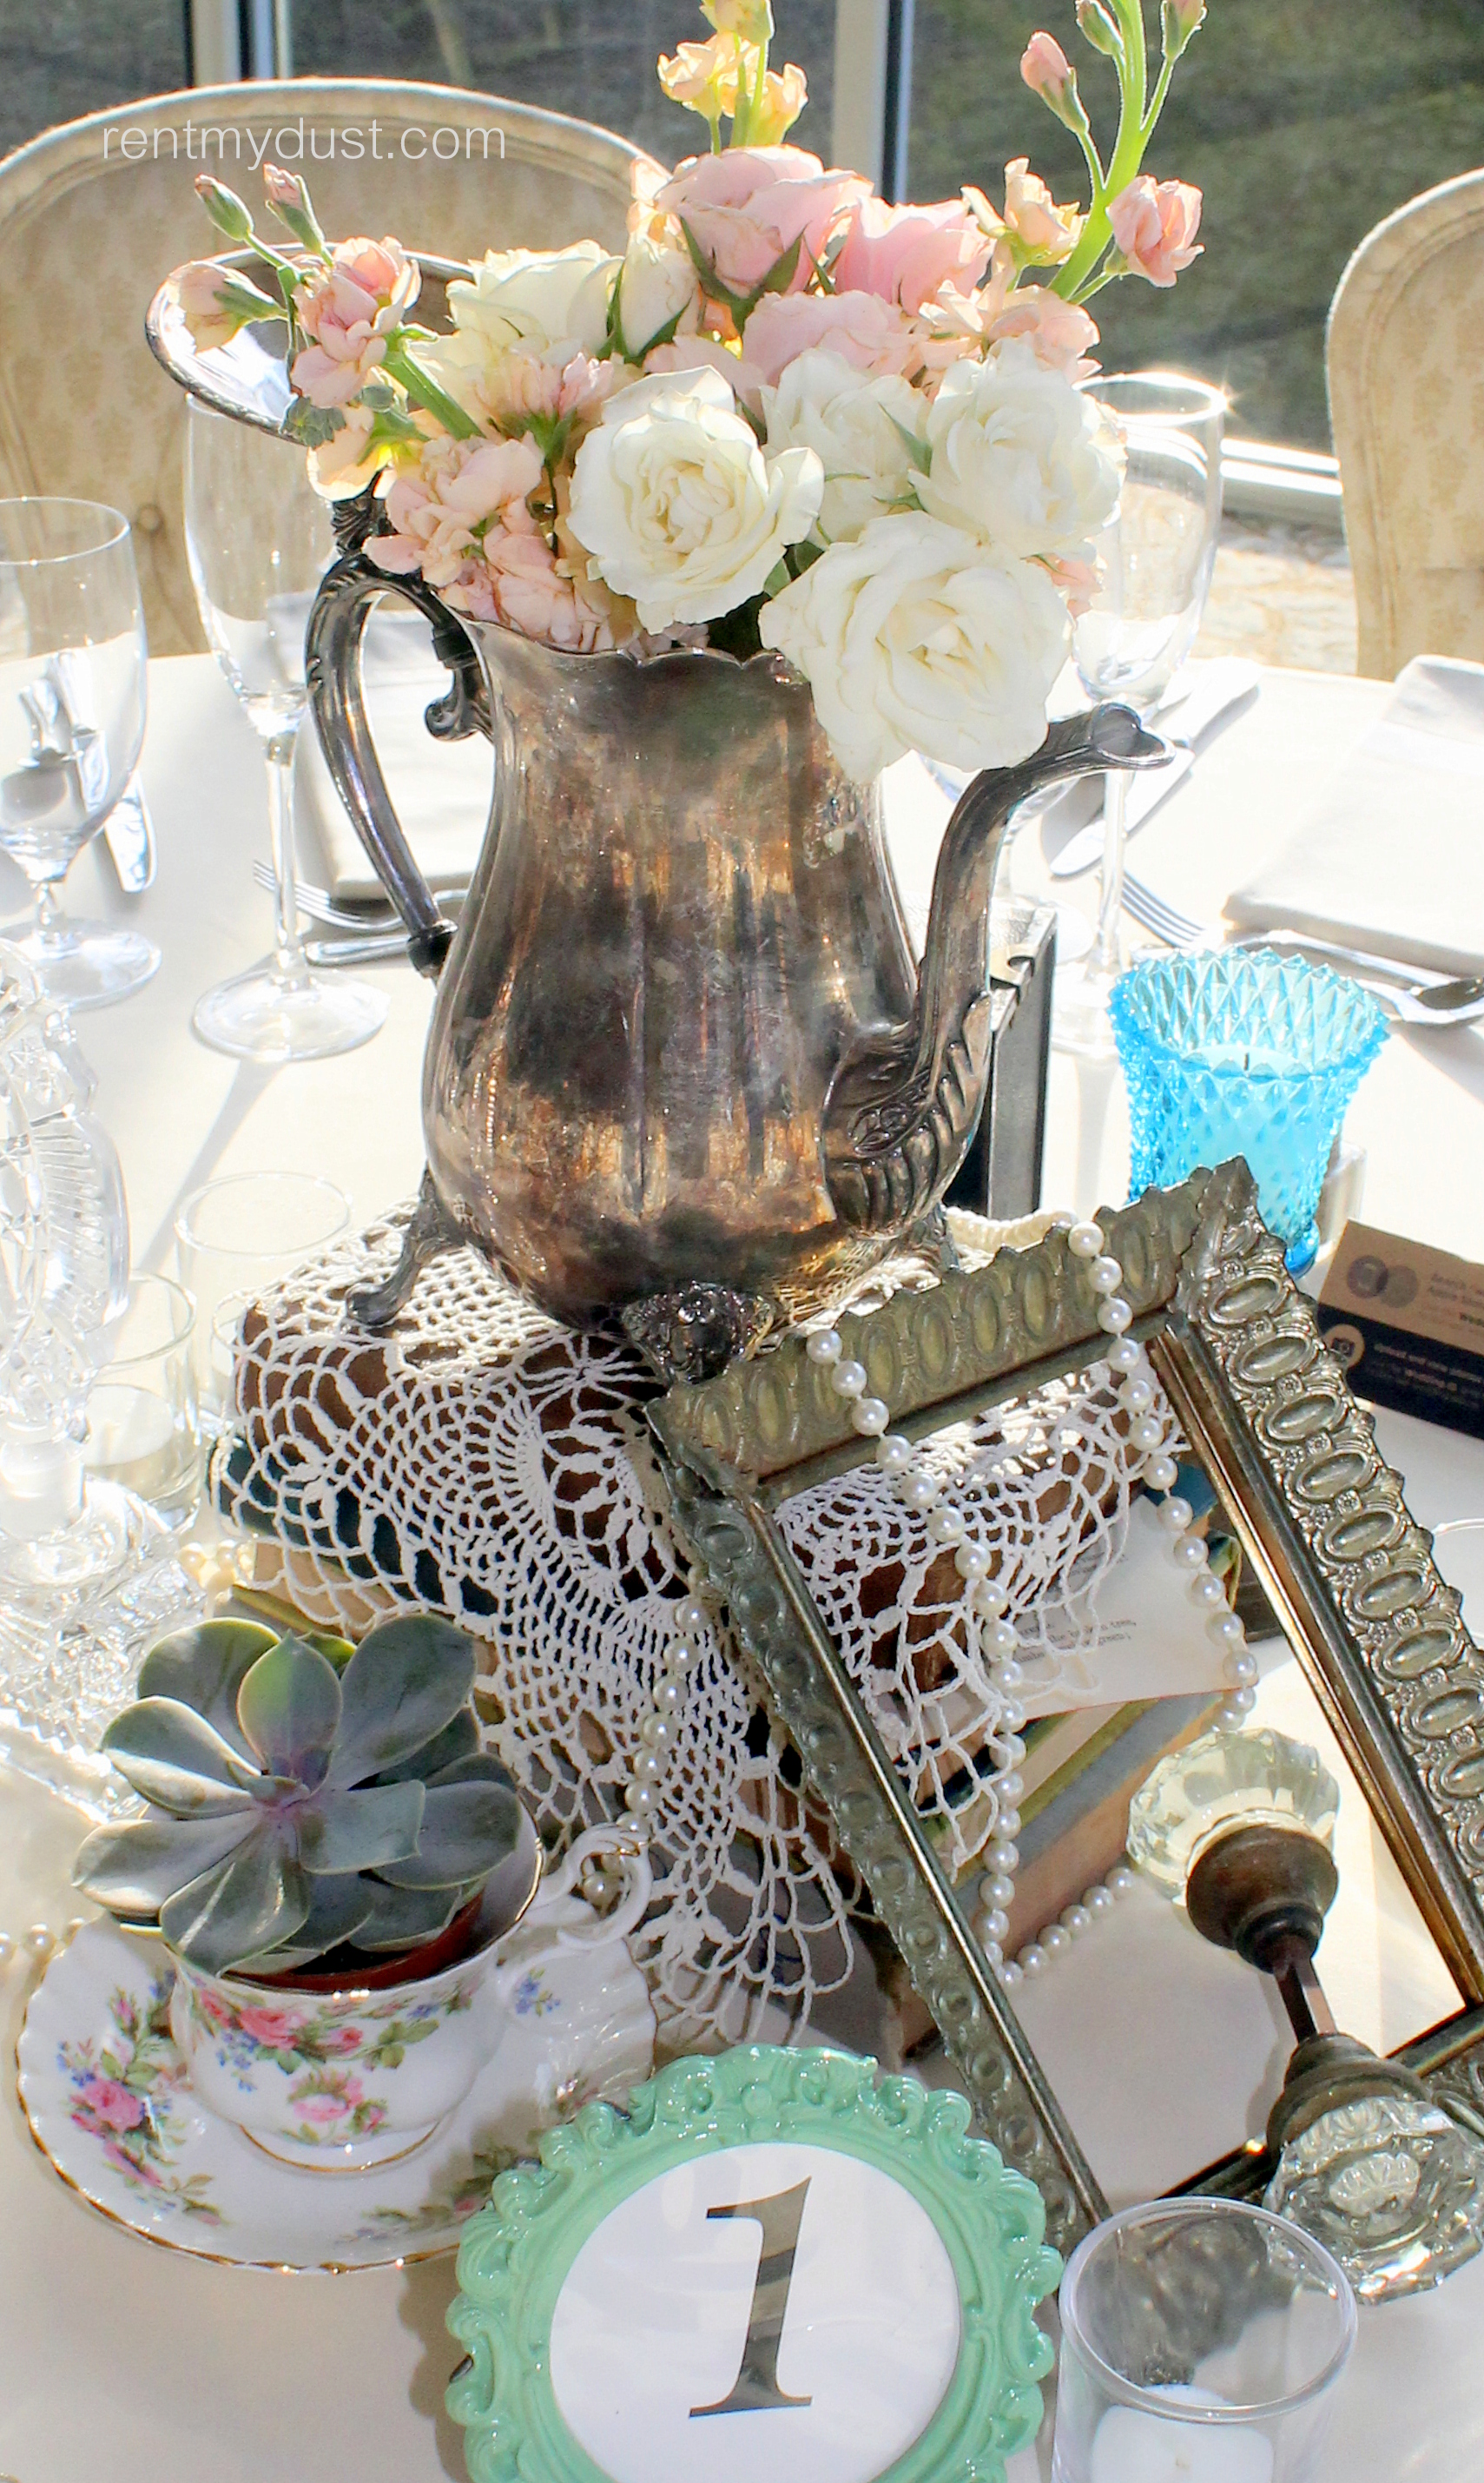 rent my dust_tablescape13.jpg